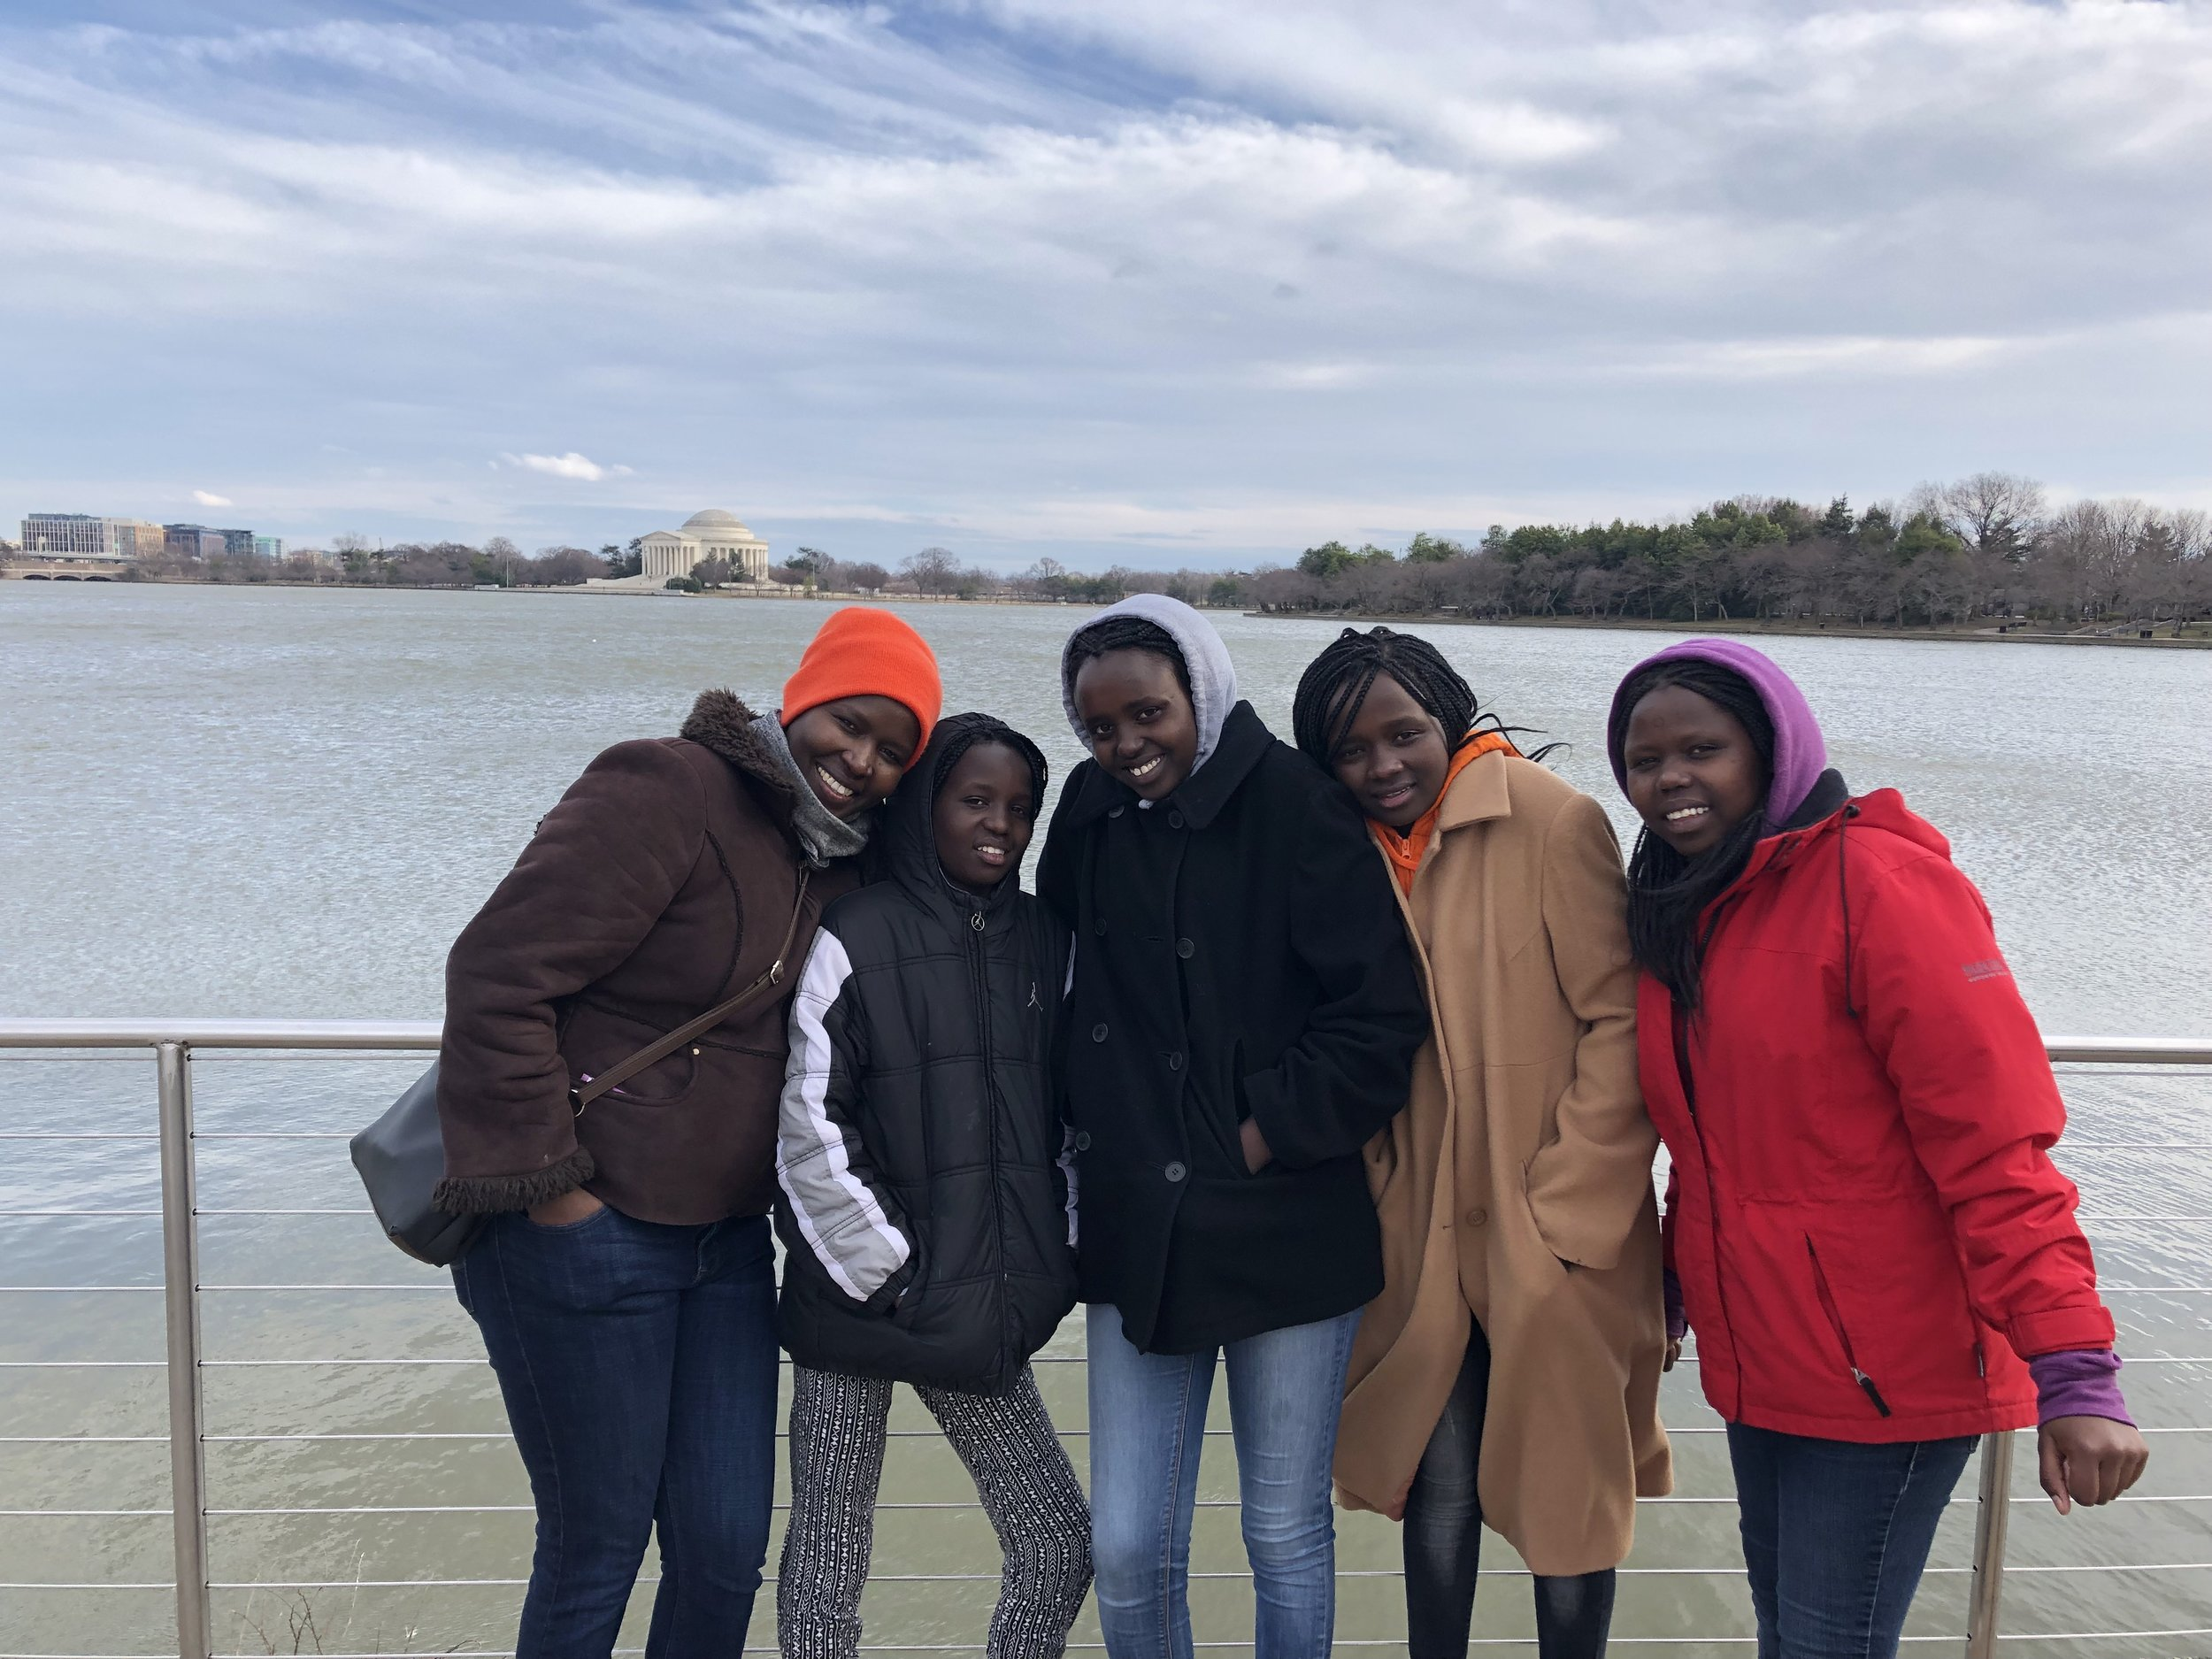 Kakenya and the girls brave the windy winter weather to explore the National Mall